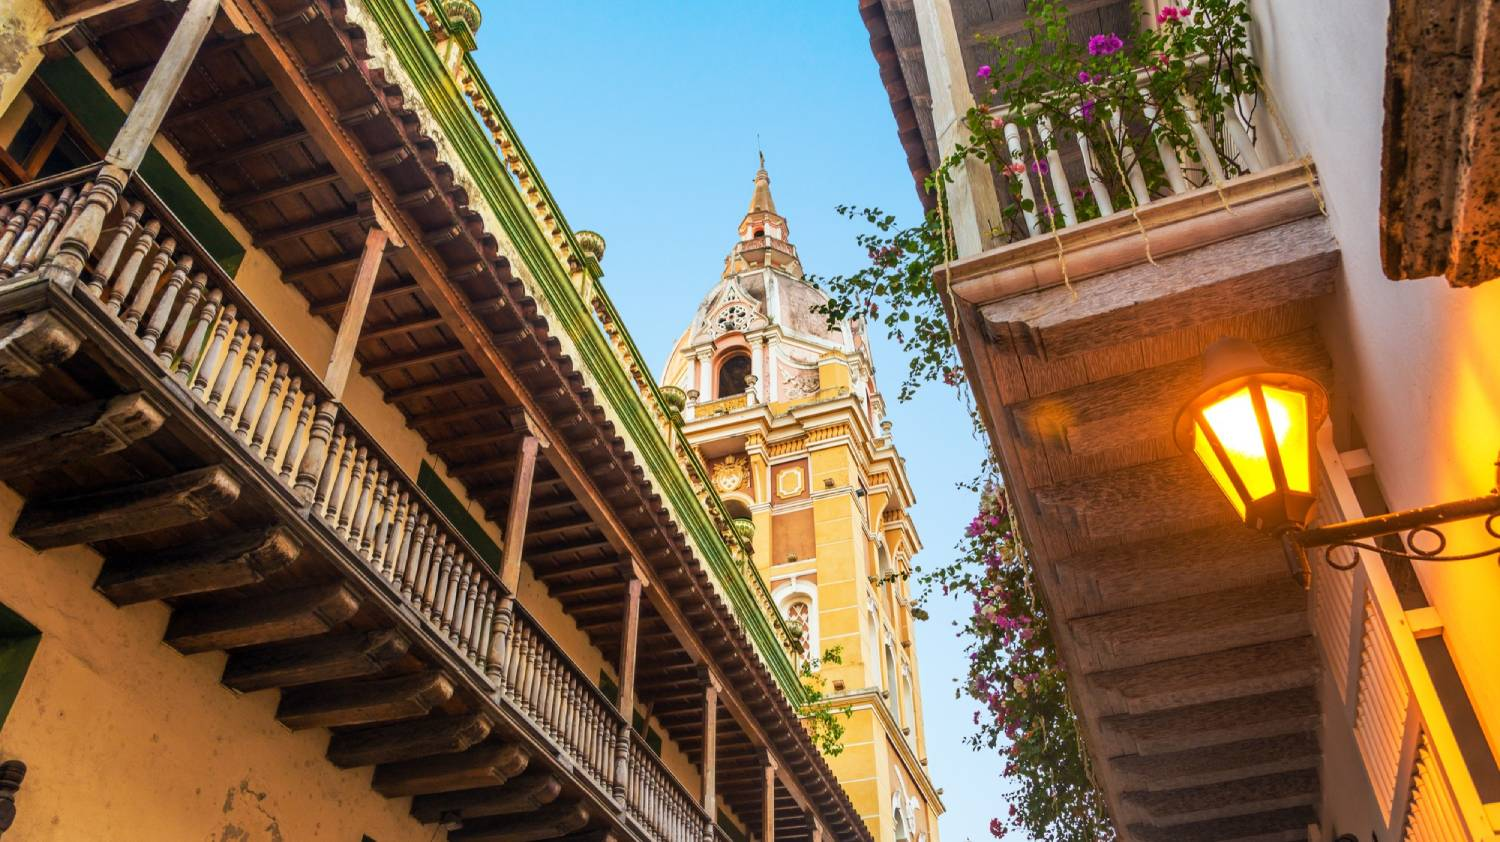 Old Town Cartagena - Things To Do In Cartagena